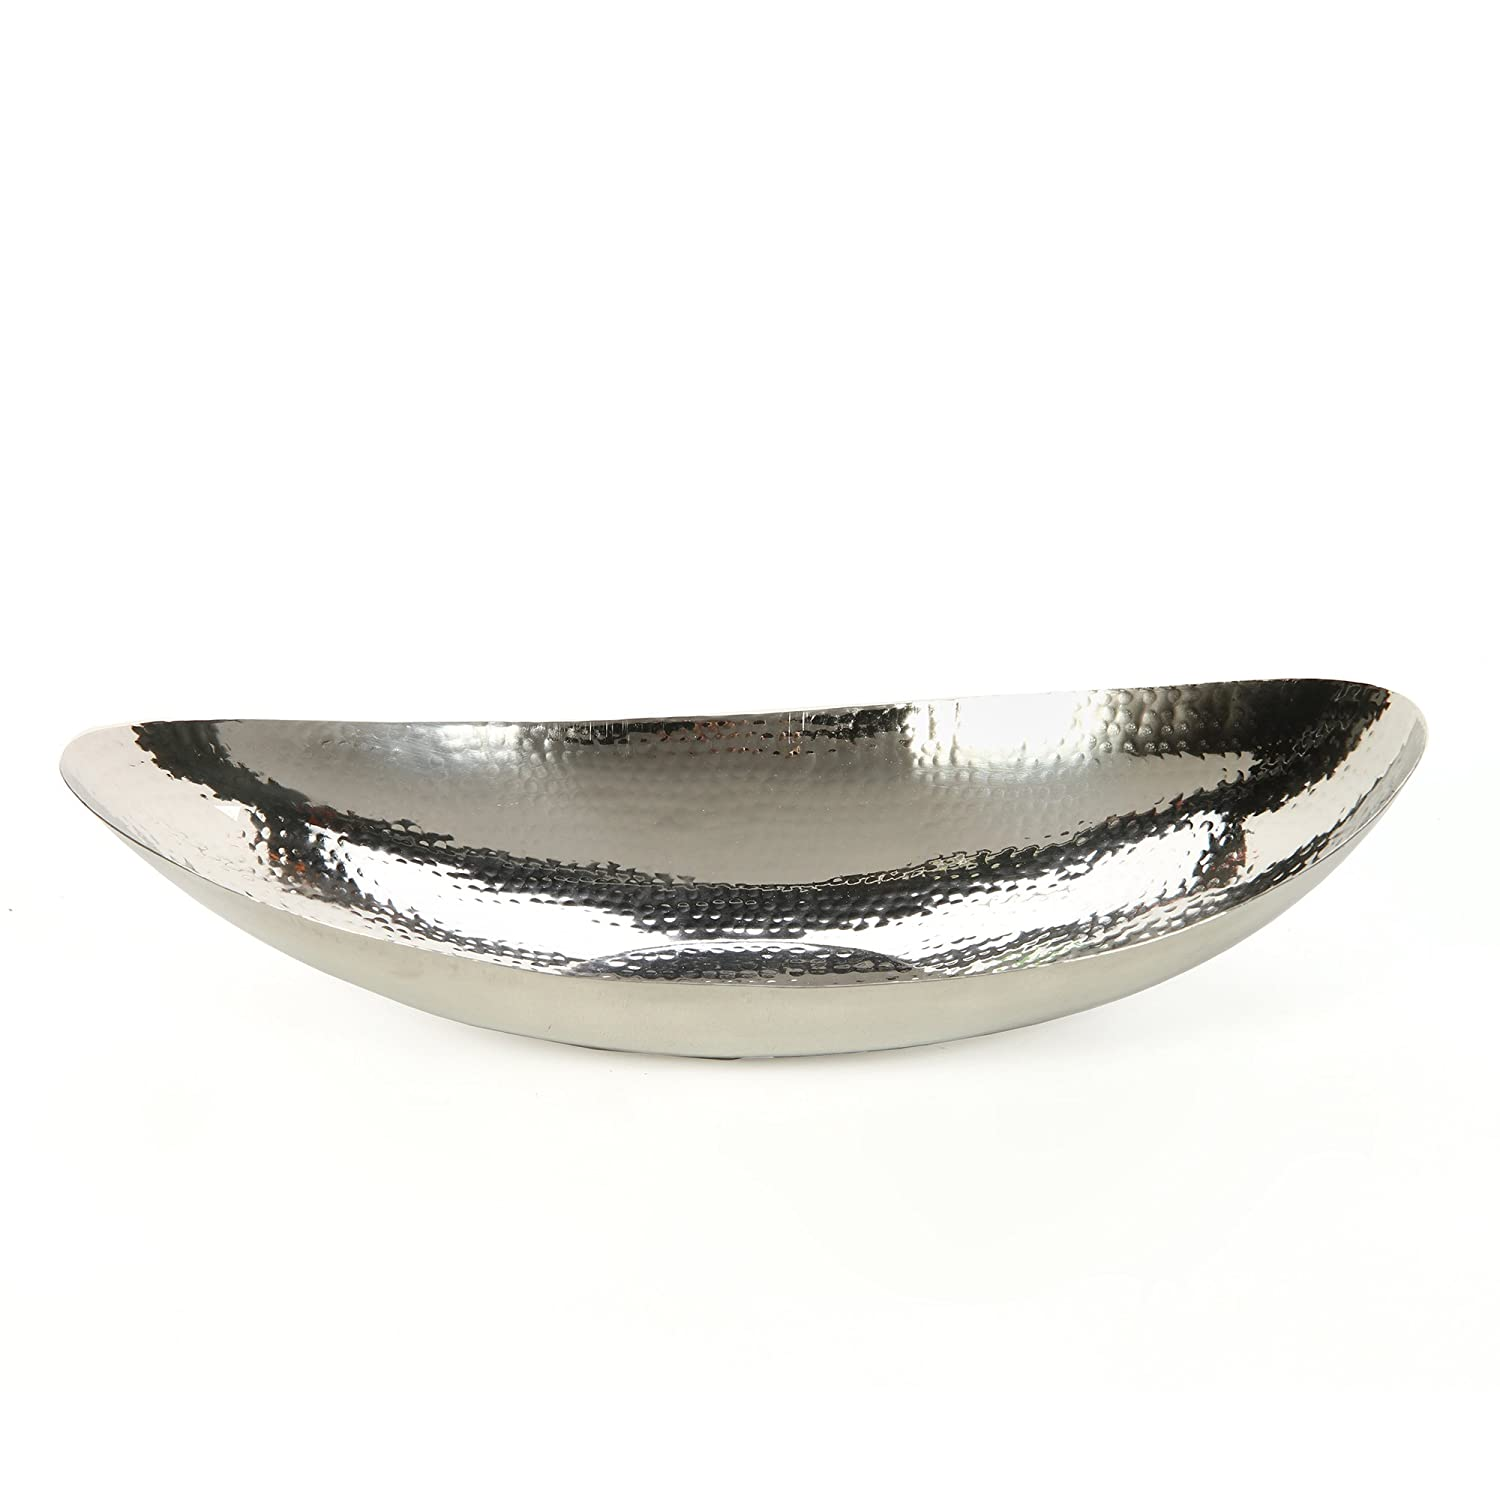 Hosley 13.5 Hammered Stainless Steel Oval Bowl Ideal for Orbs, Dry Potpourri, Ball Candles, Weddings, Special Events, Center Pieces, Crafts. Coordinate with Other Hosley Decor & Floor vases FBA_FBA-G34271ON-1-EA